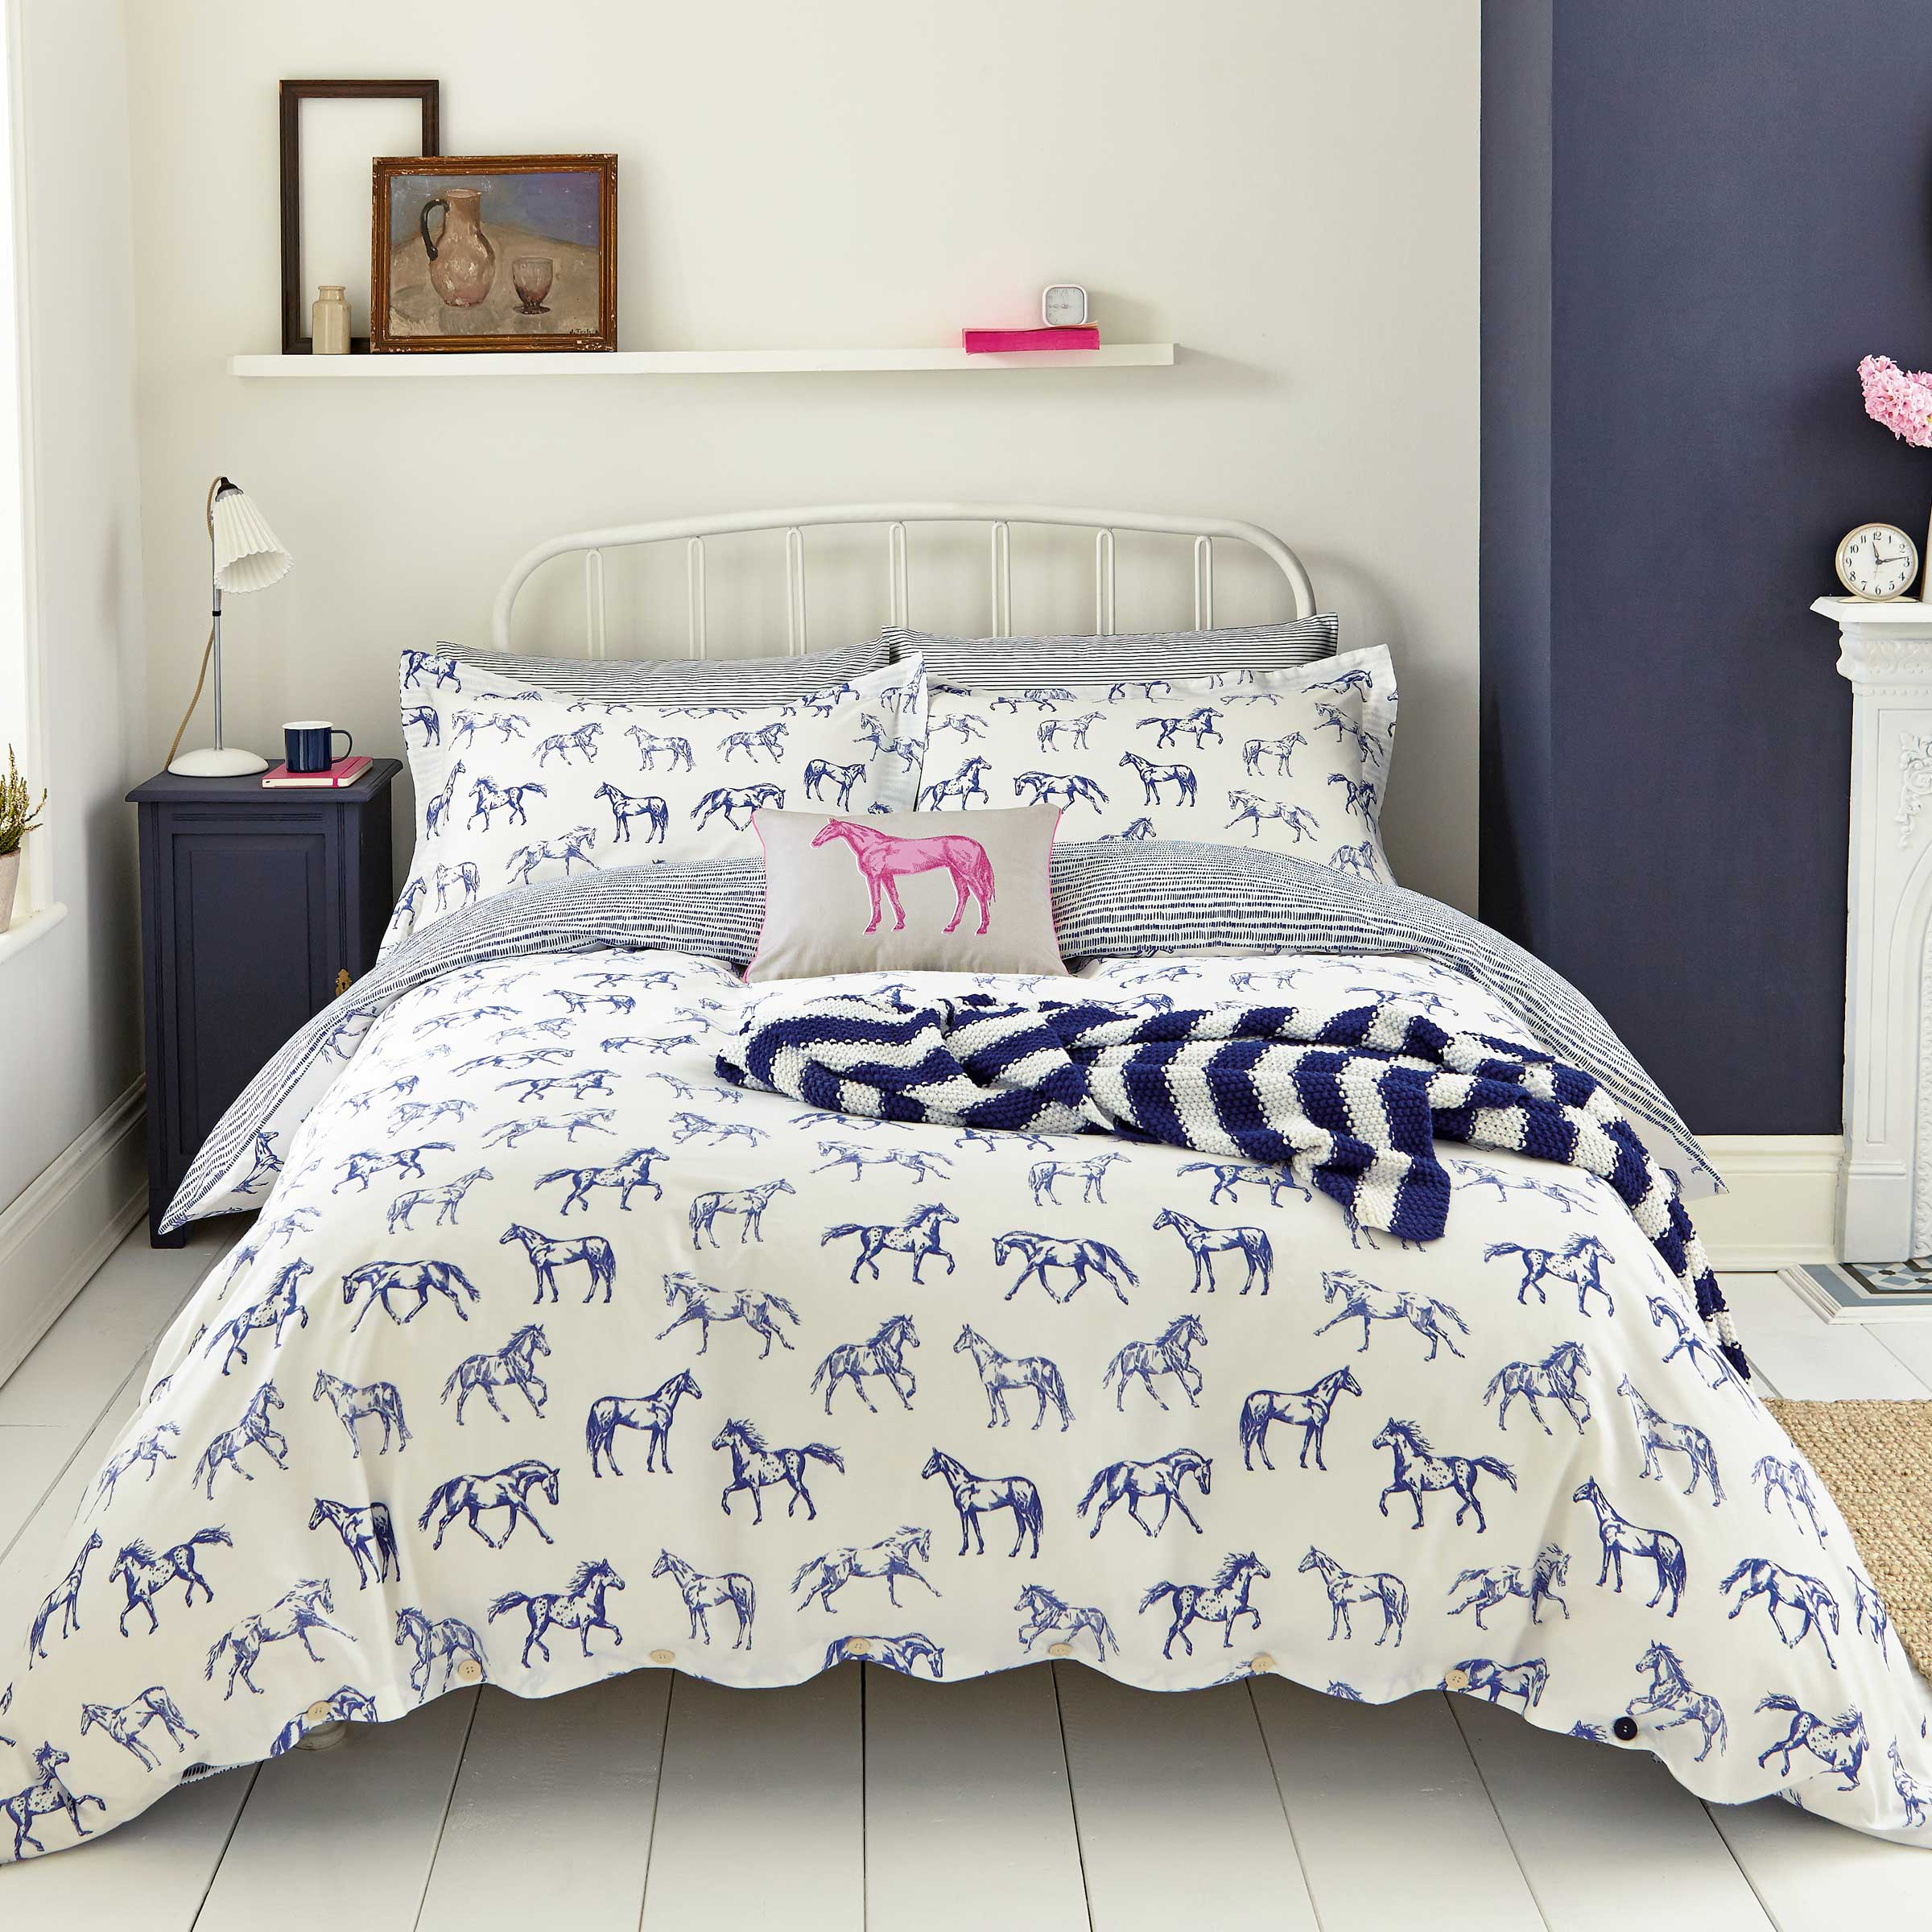 Joules Hand Drawn Horse Bedding in Blue